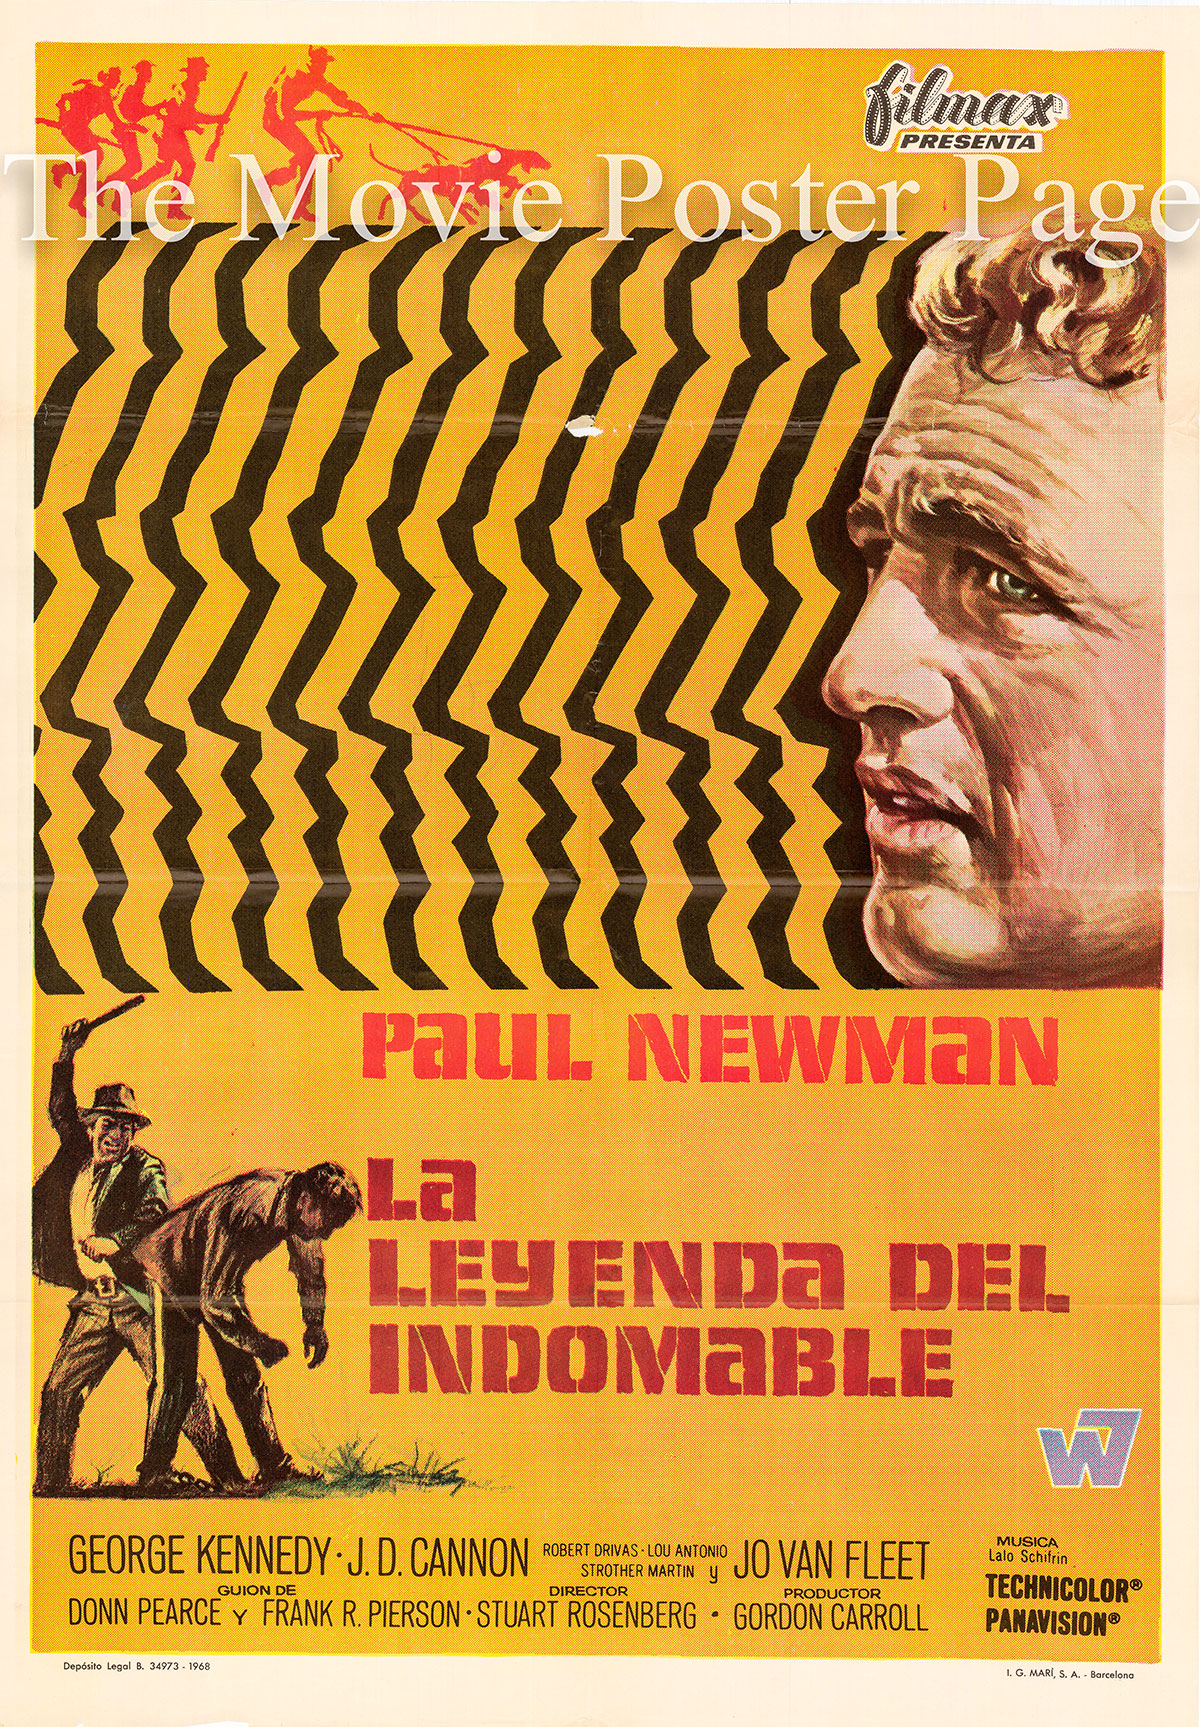 Pictured is a Spanish promotional poster for the 1967 Stuart Rosenberg film Cool Hand Luke starring Paul Newman.